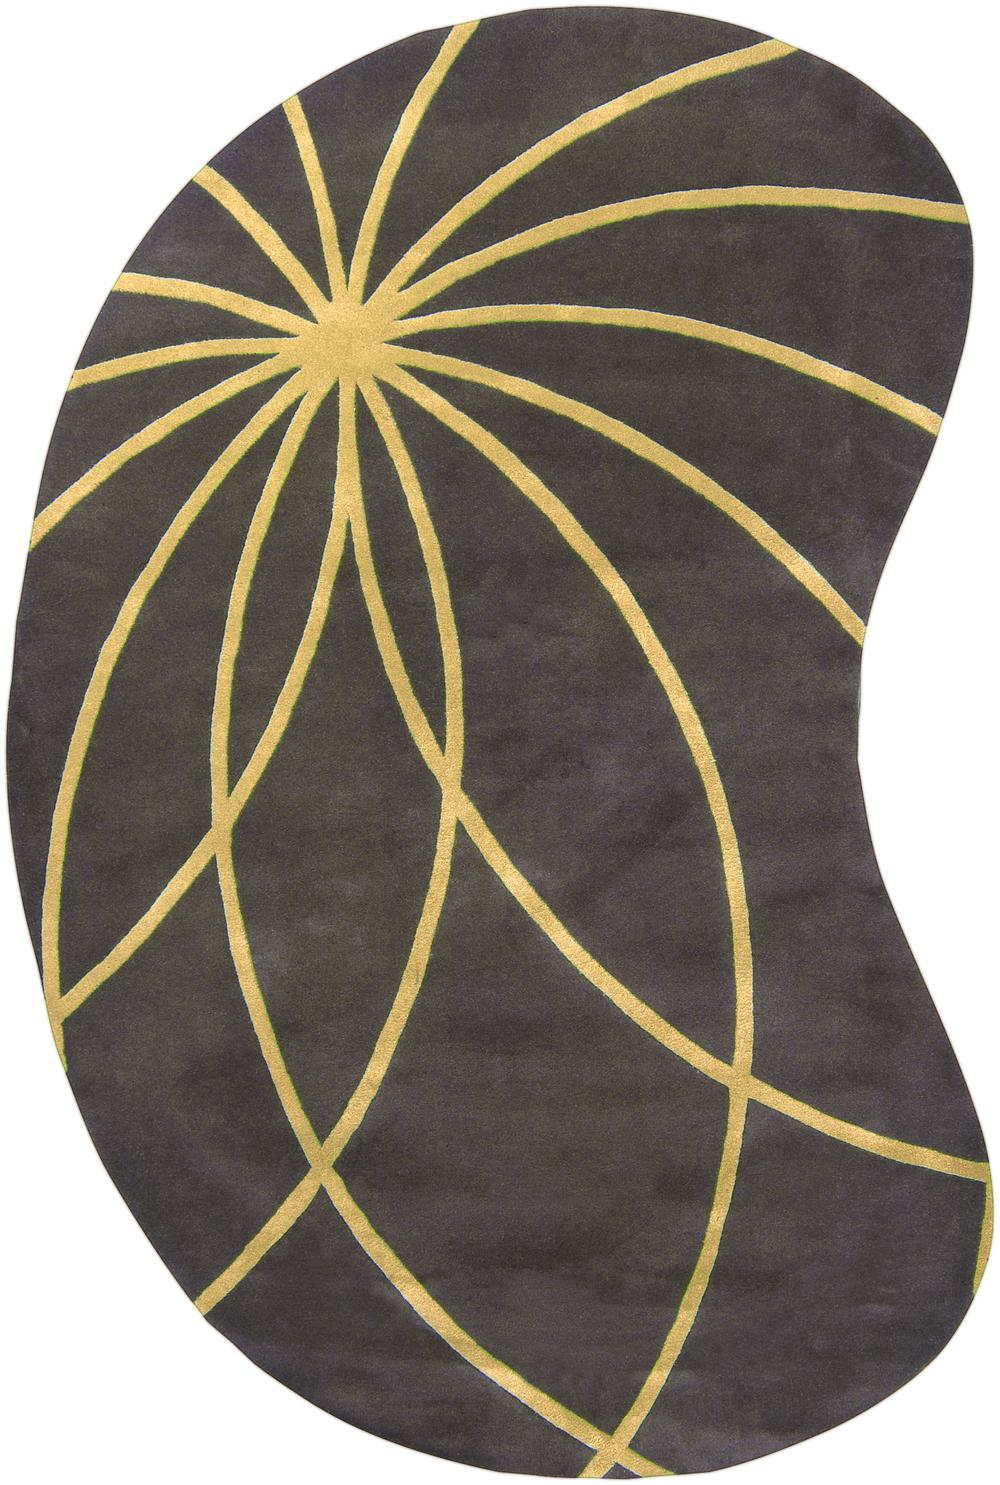 Surya Forum Fm7181 Yellow Area Rug Free Shipping